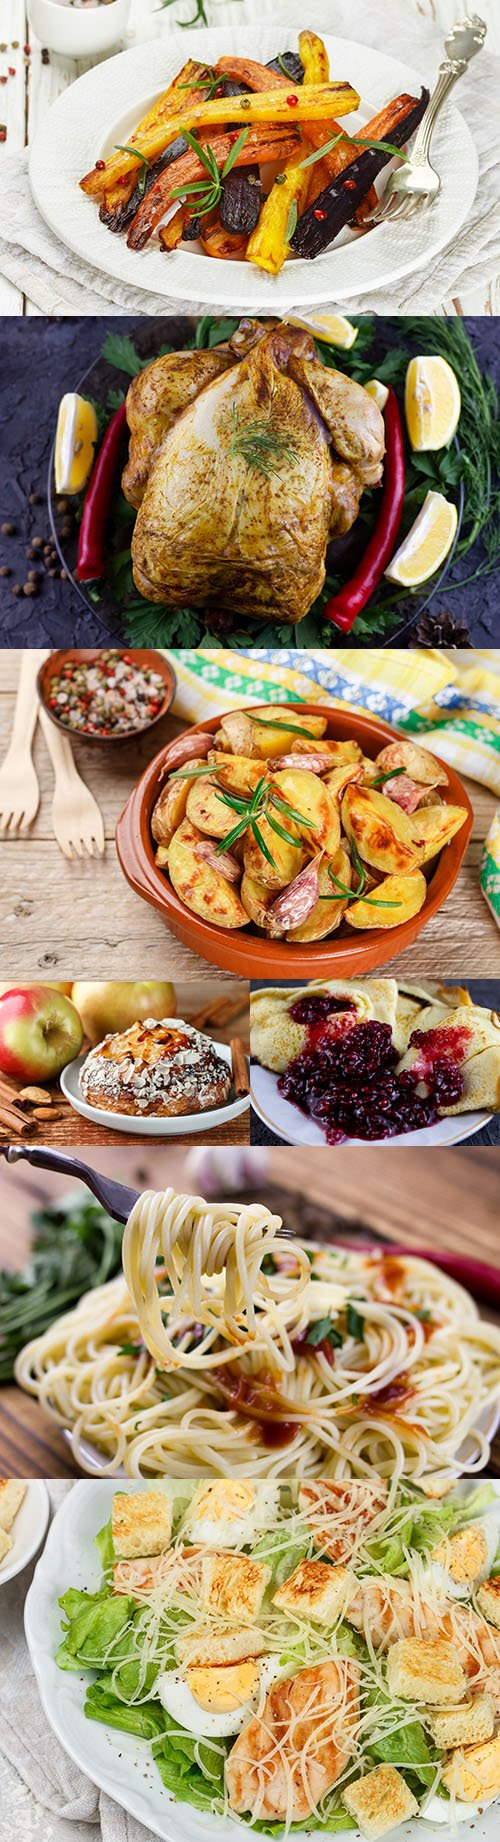 Salads, meat and desserts delicious varied menu